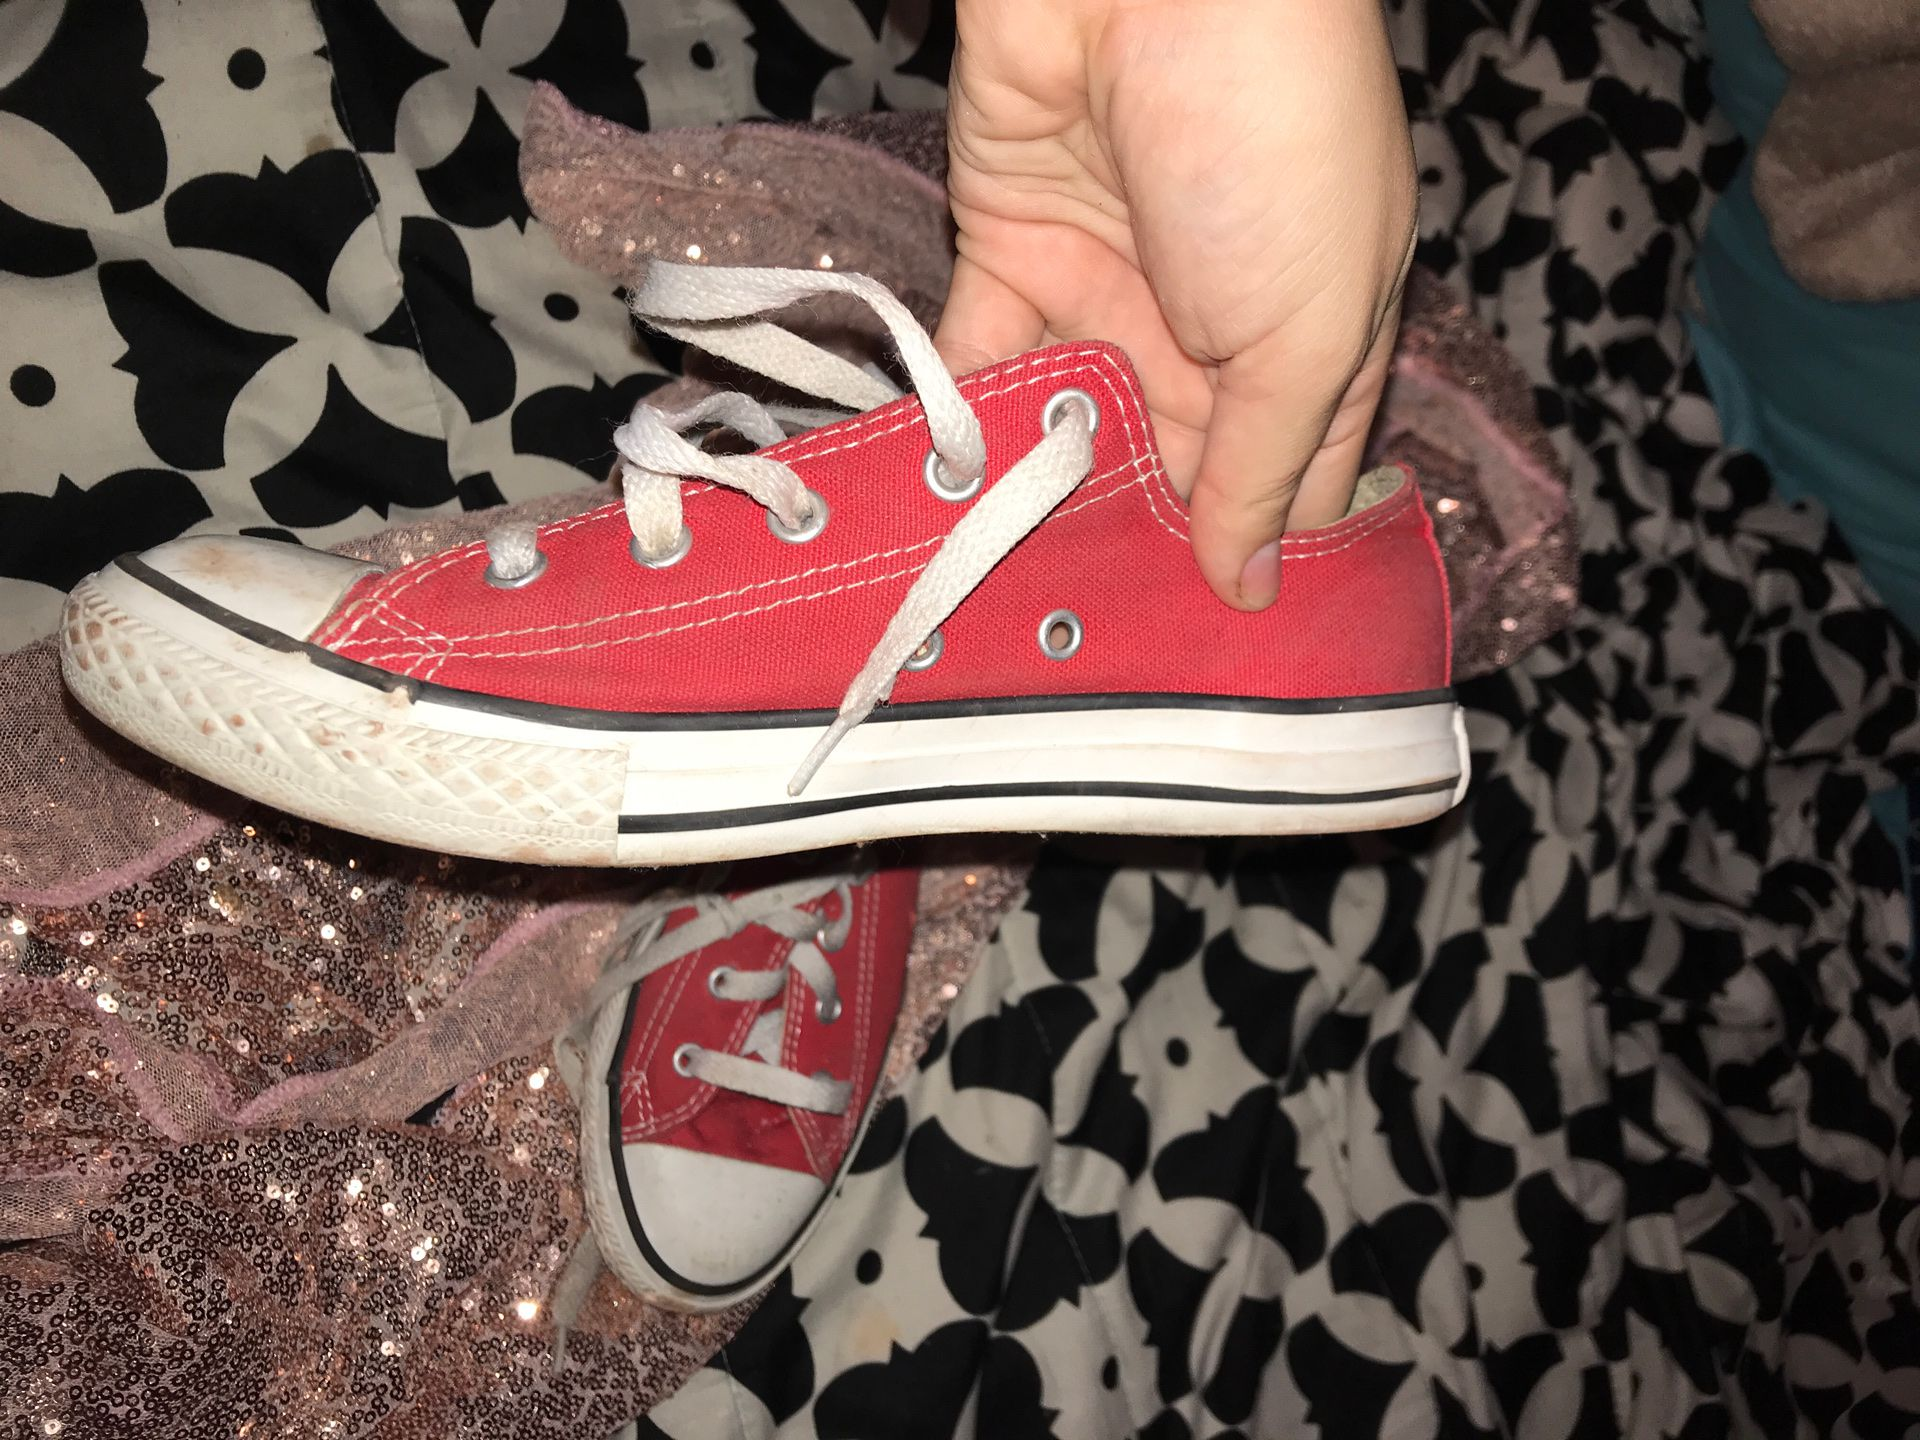 Red all star converse , for 15 bucks!